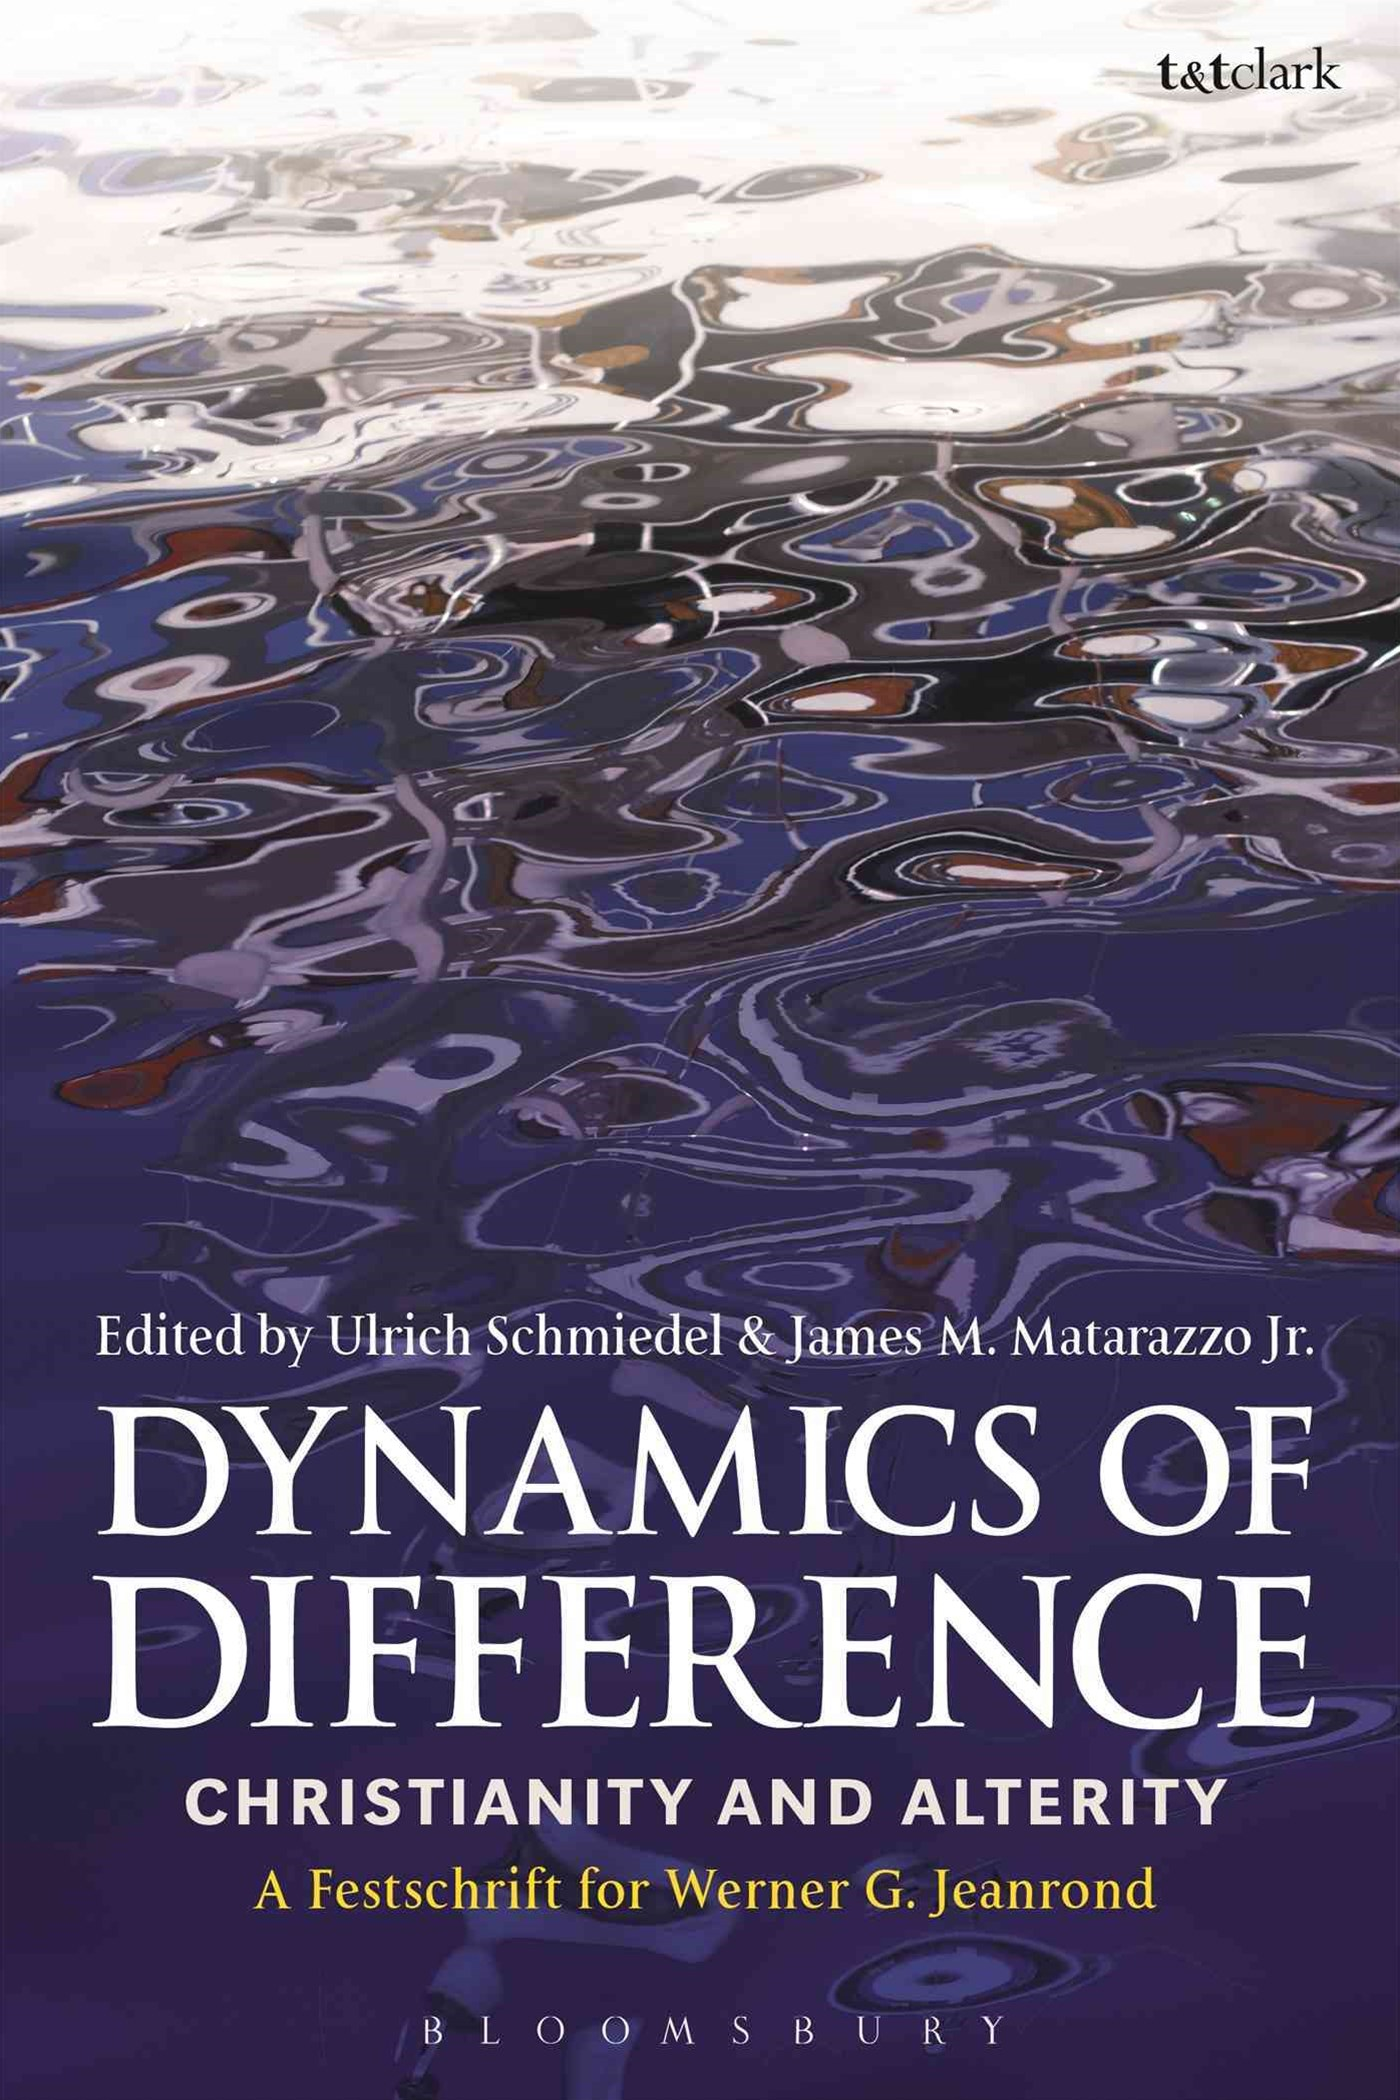 Dynamics of Difference